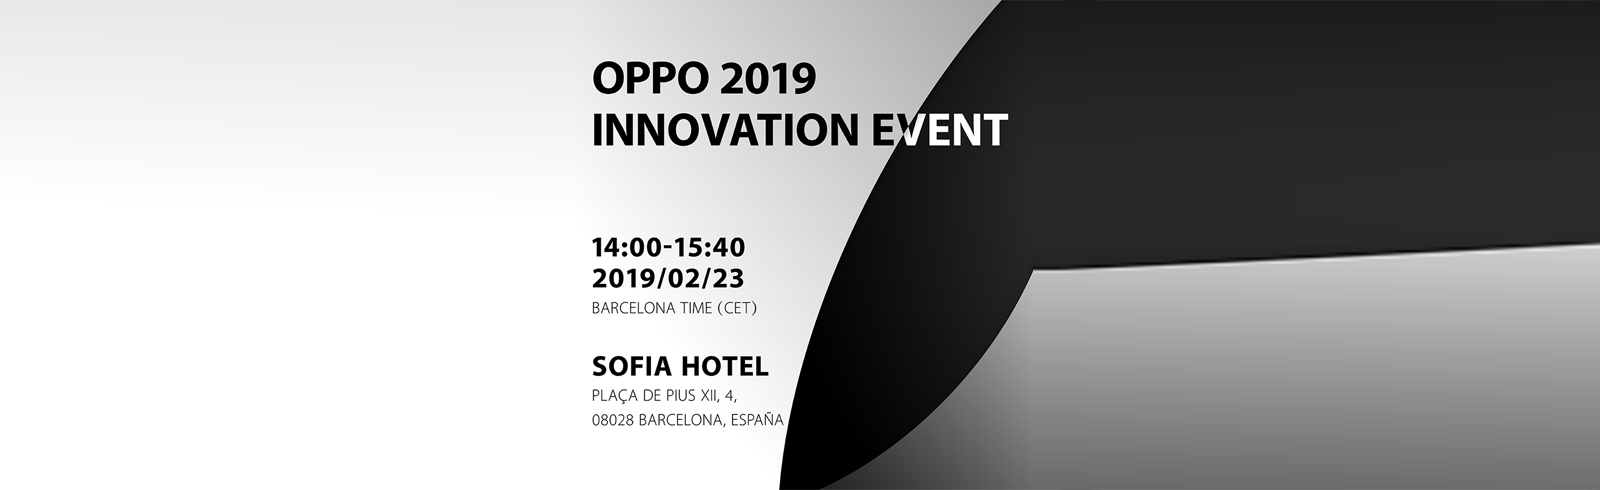 Oppo schedules its 2019 Innovation Event for February 23 in Barcelona